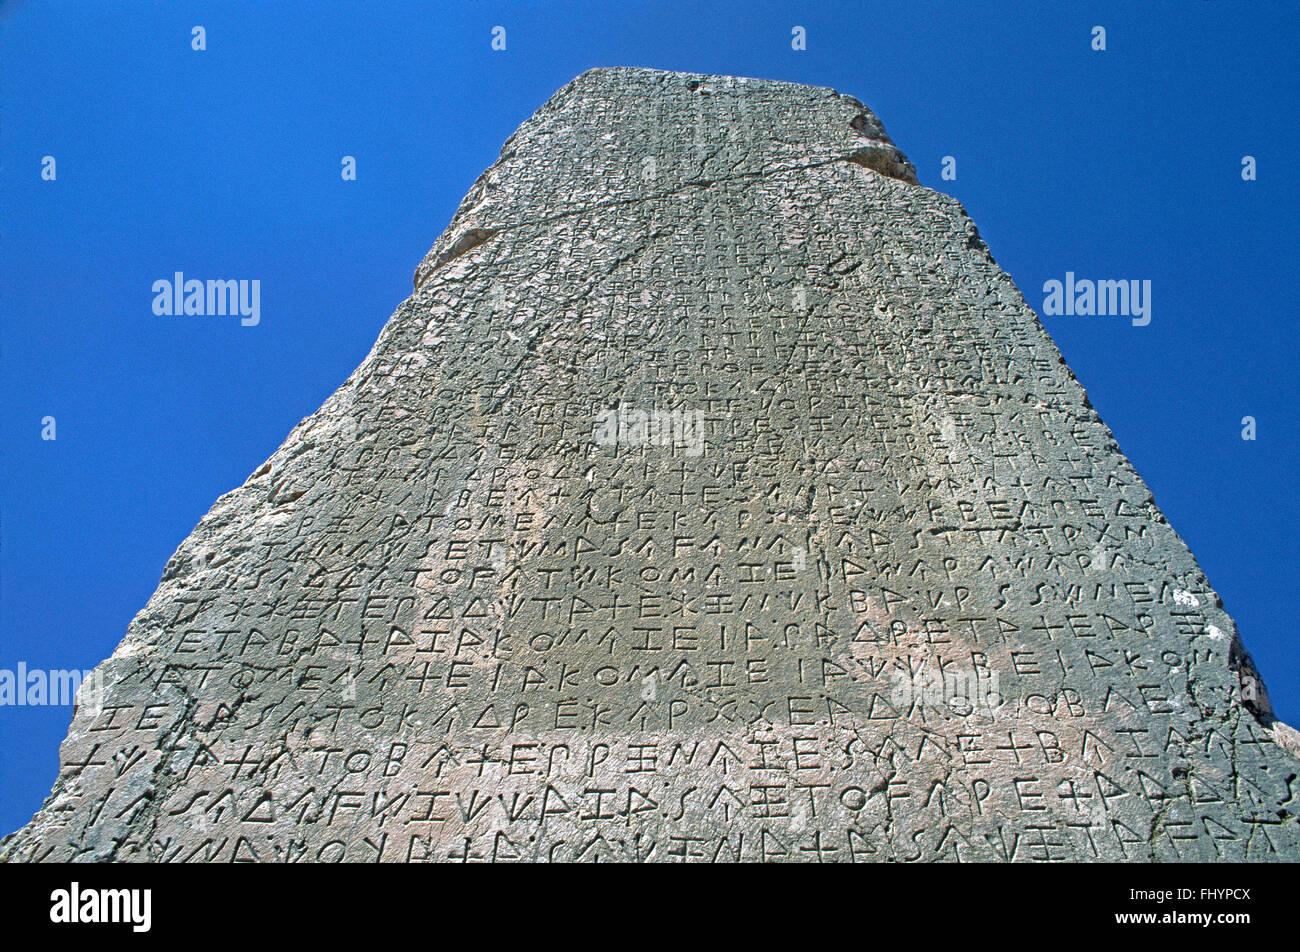 GREEK writing on Obelisk at XANTHOS (LYCIA'S ancient capital dating back to the 5th Cent. BC) - TURKEY - Stock Image